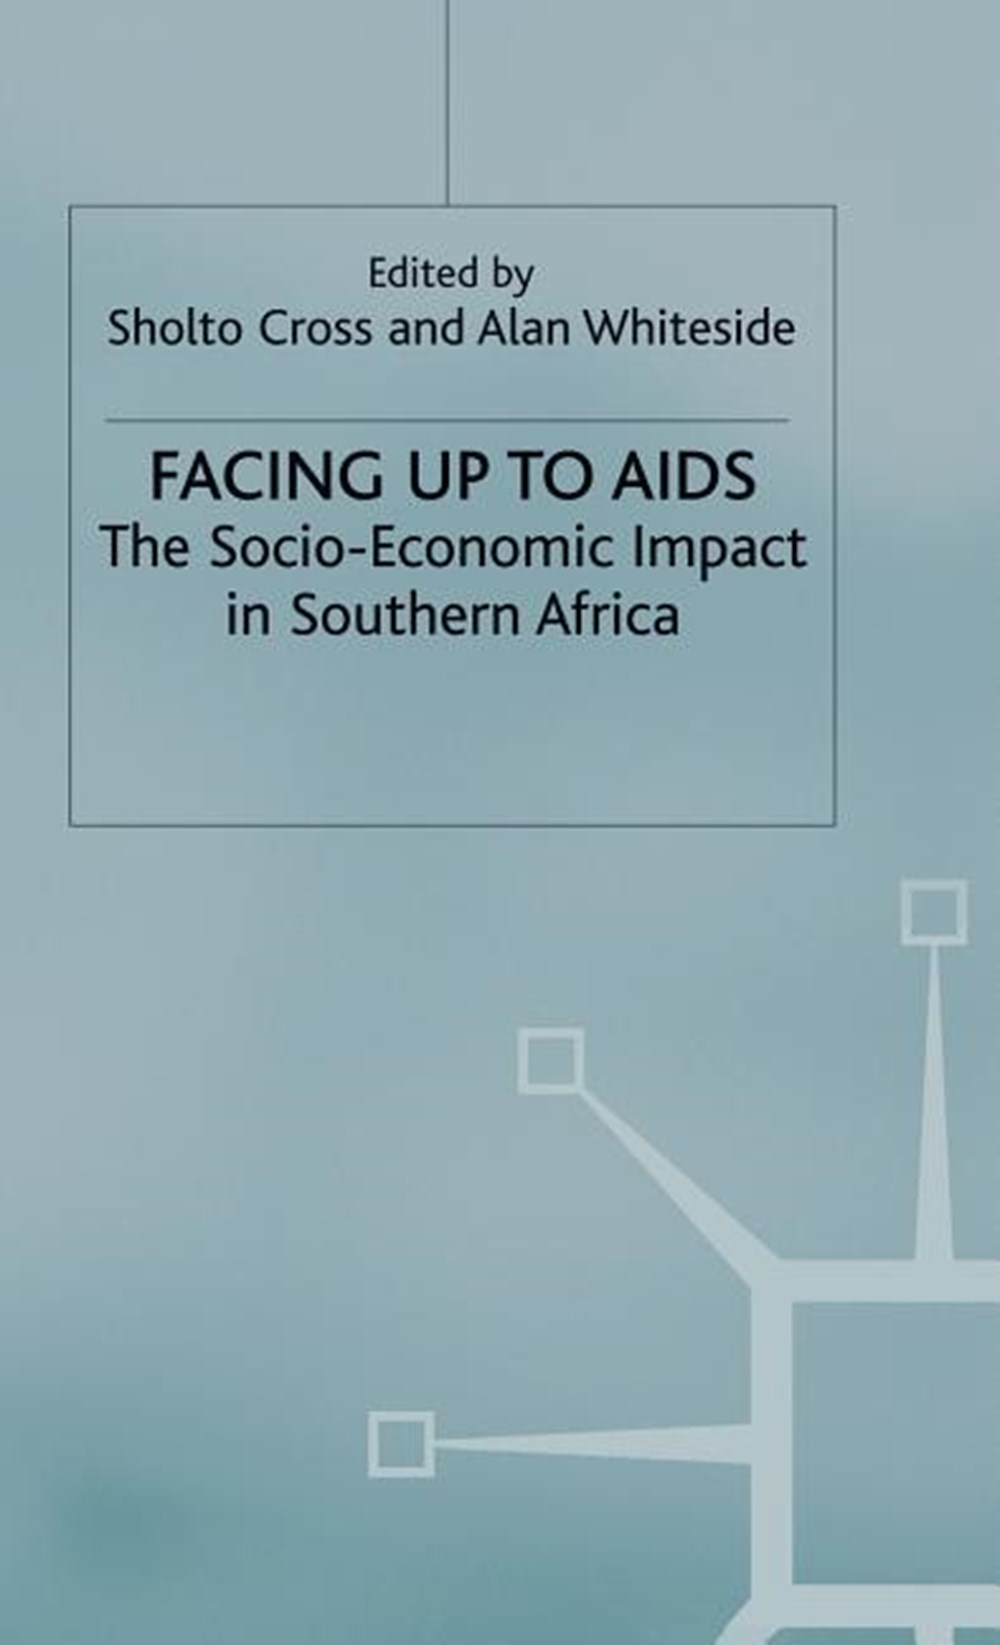 Facing Up to AIDS The Socio-Economic Impact in Southern Africa (1996)